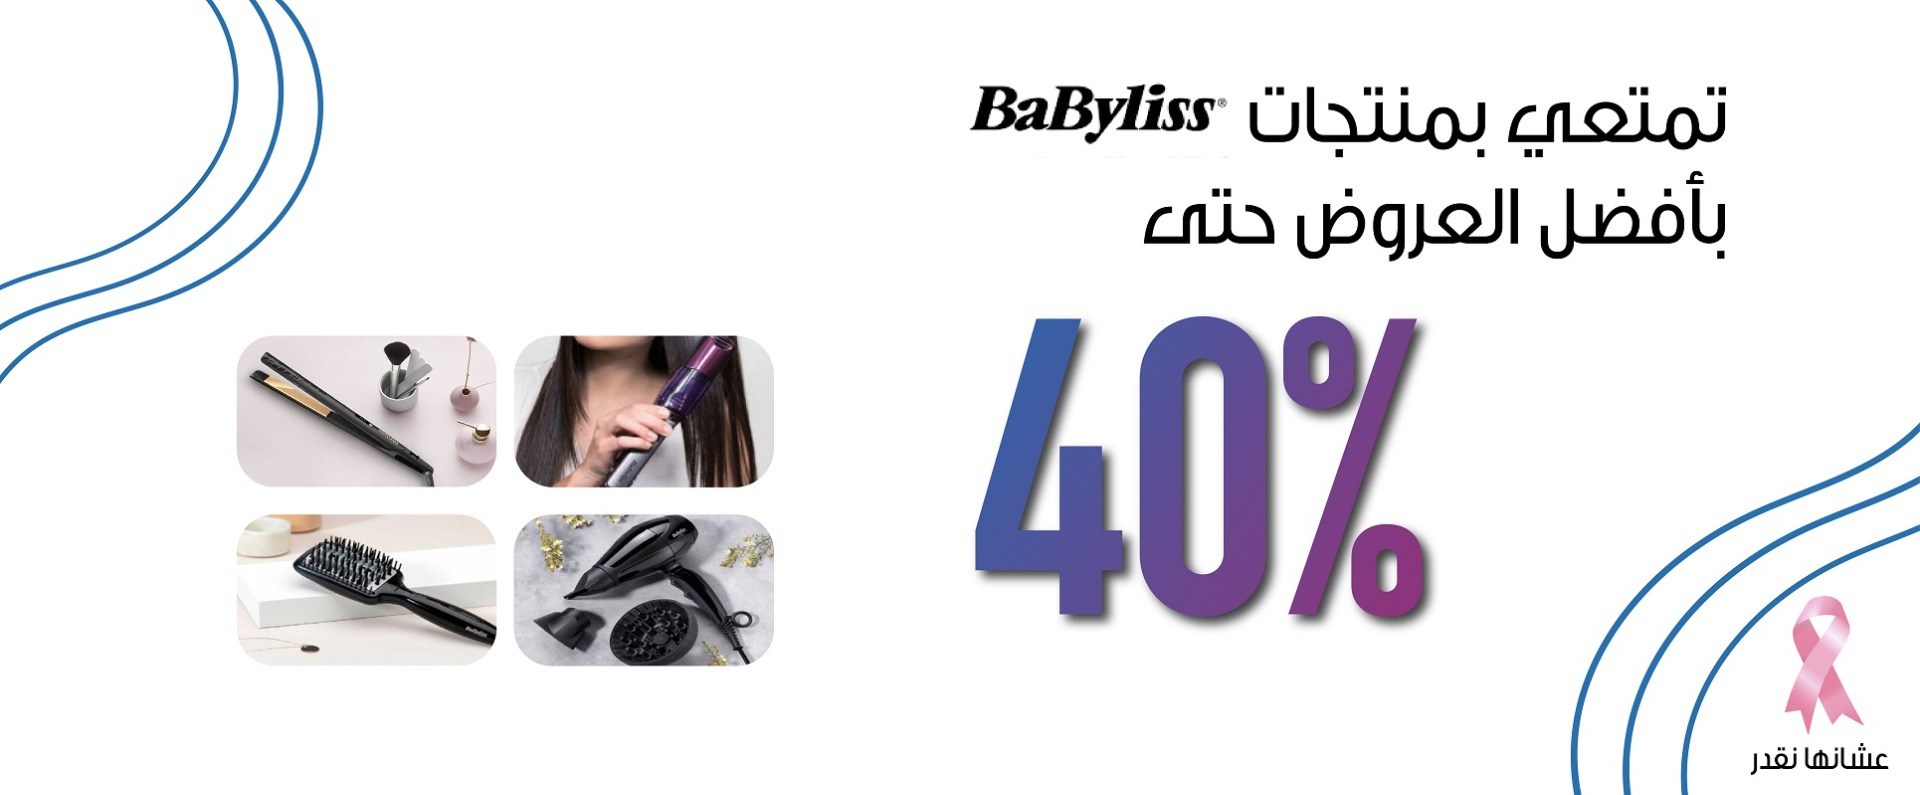 Babyliss Clearance